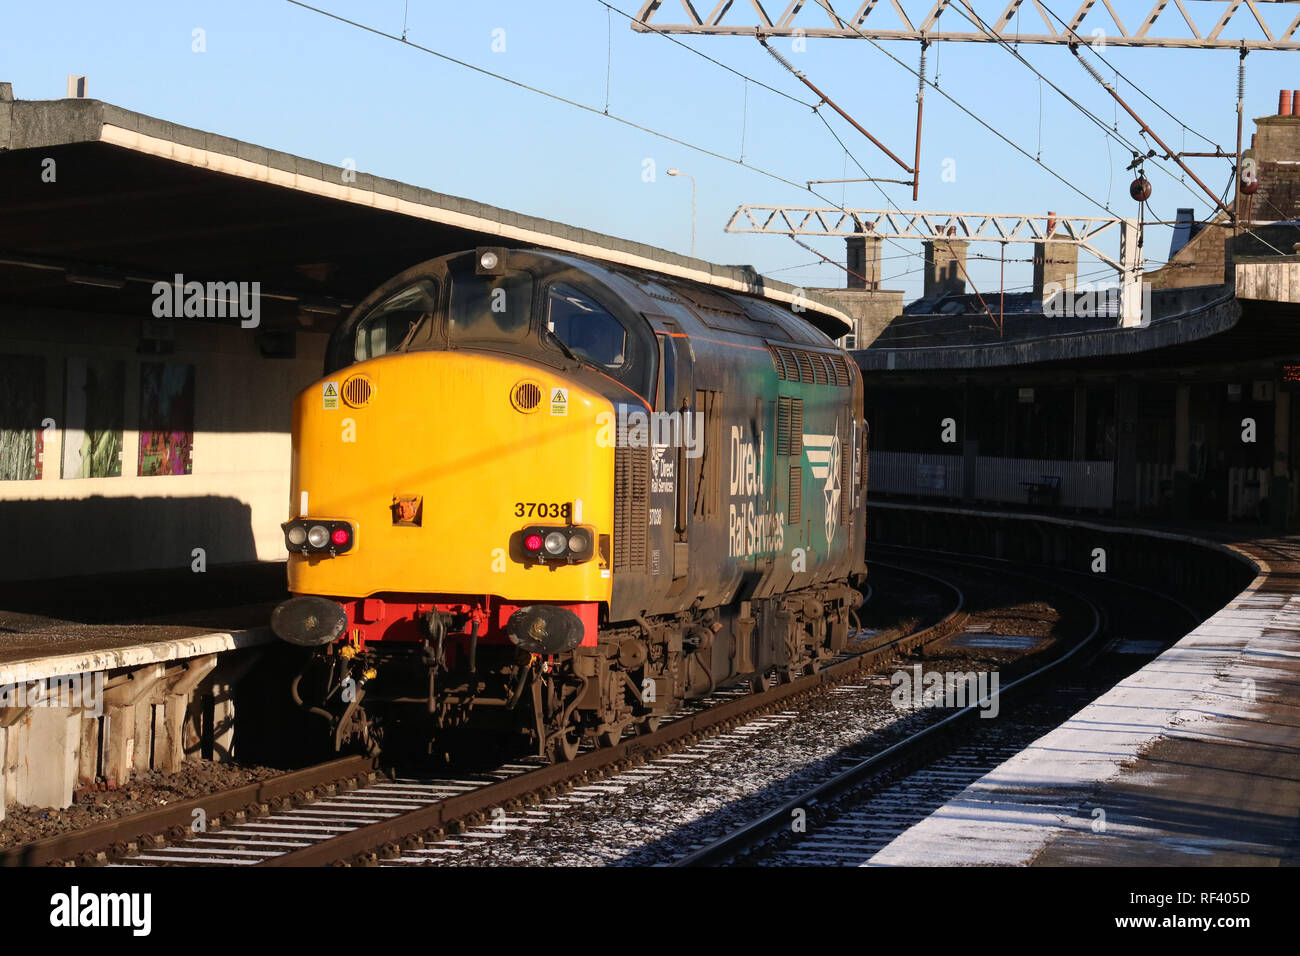 Class 37 diesel-electric loco in Direct Rail Services livery on light engine working passing through Carnforth station platform 2 on 23 January 2019. - Stock Image